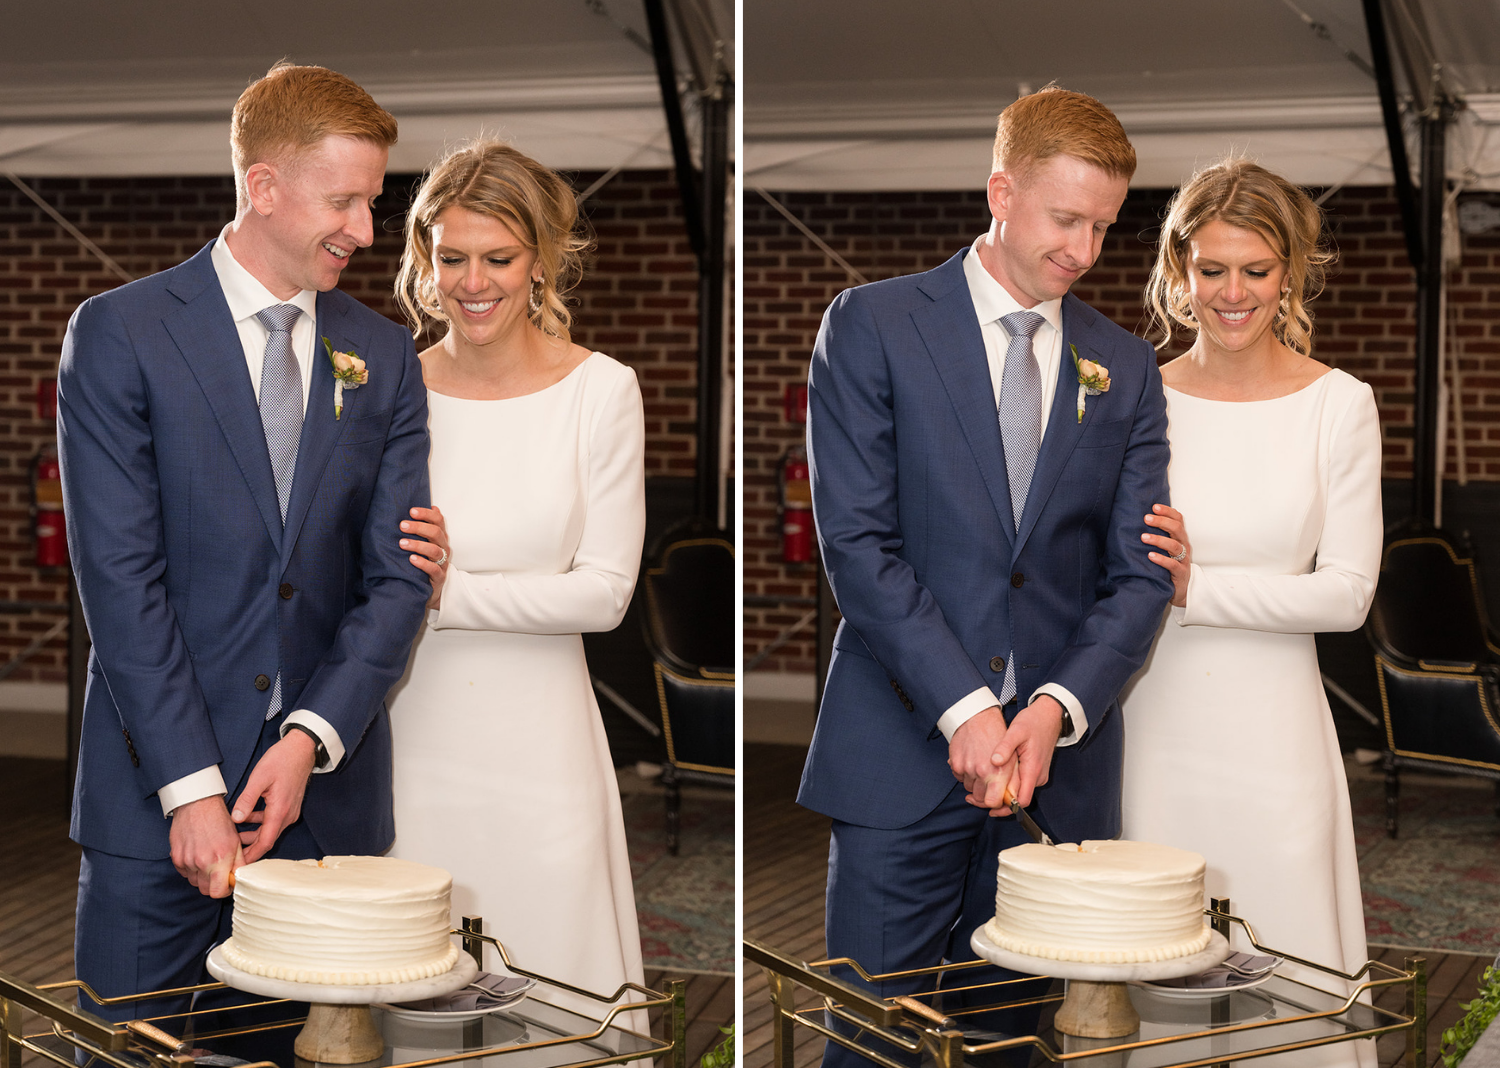 bride and groom cut the cake to celebrate their wedding at the Line Hotel in Washington D.C